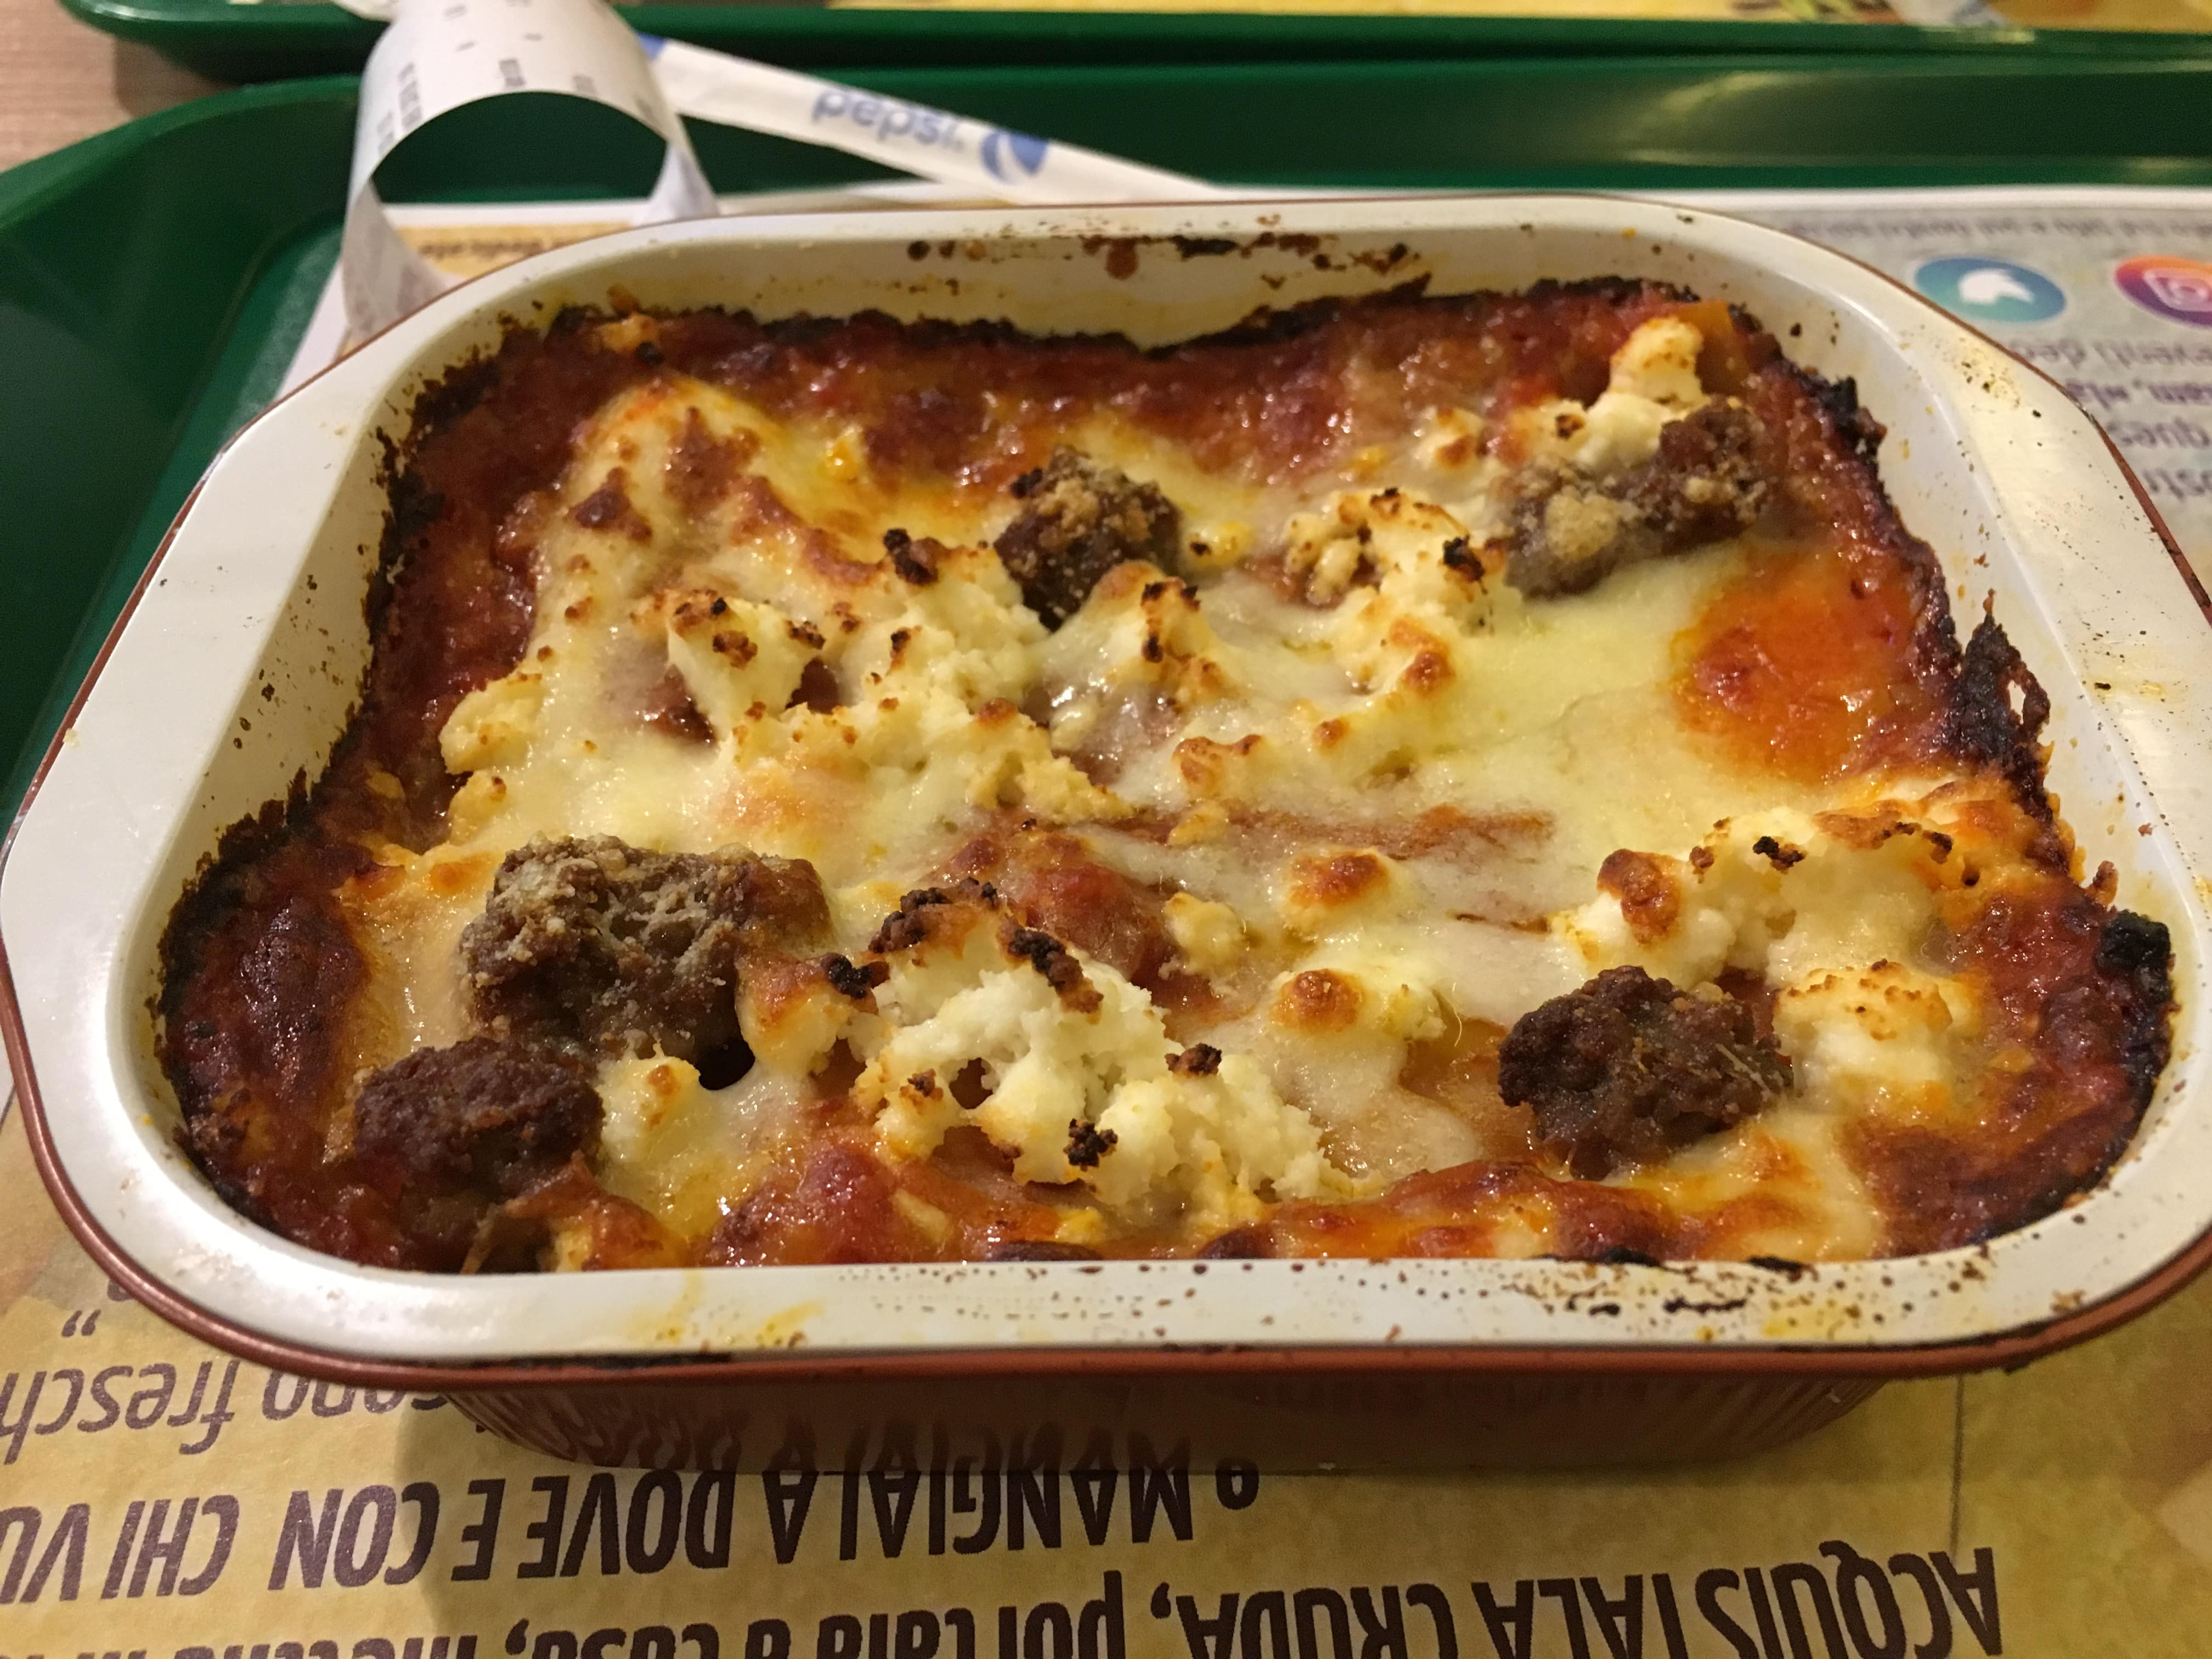 An image of a lasagne which was purchased from a takeaway lasagne shop in rome, Italy